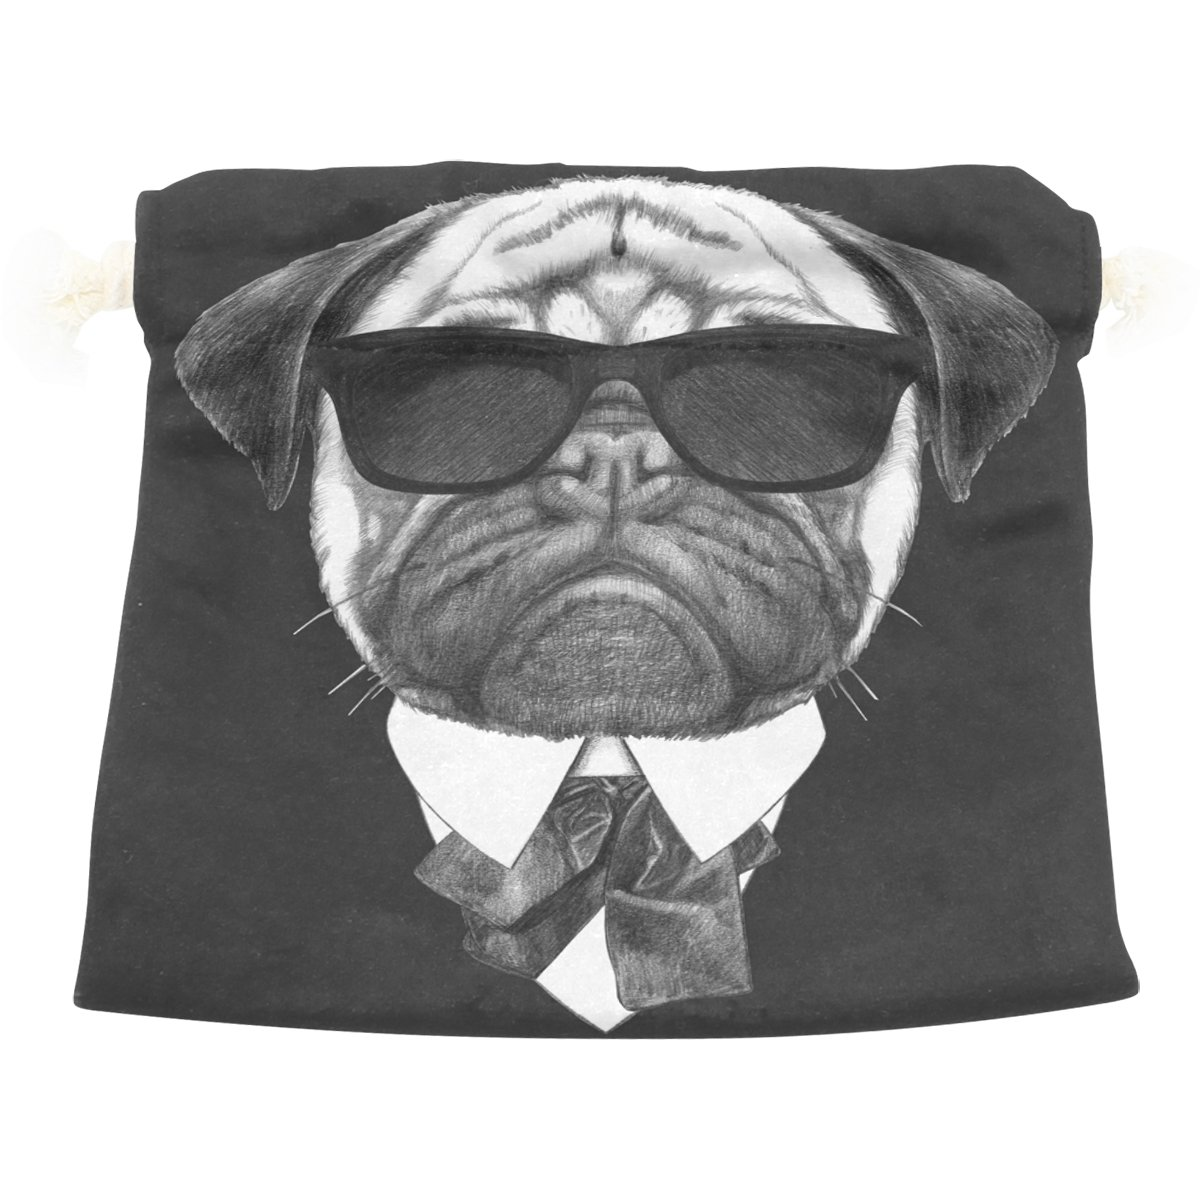 Dragon Sword Portrait Of Pug Dog In Suit Gift Bags Jewelry Drawstring Pouches for Wedding Party, 12.6x17 Inch